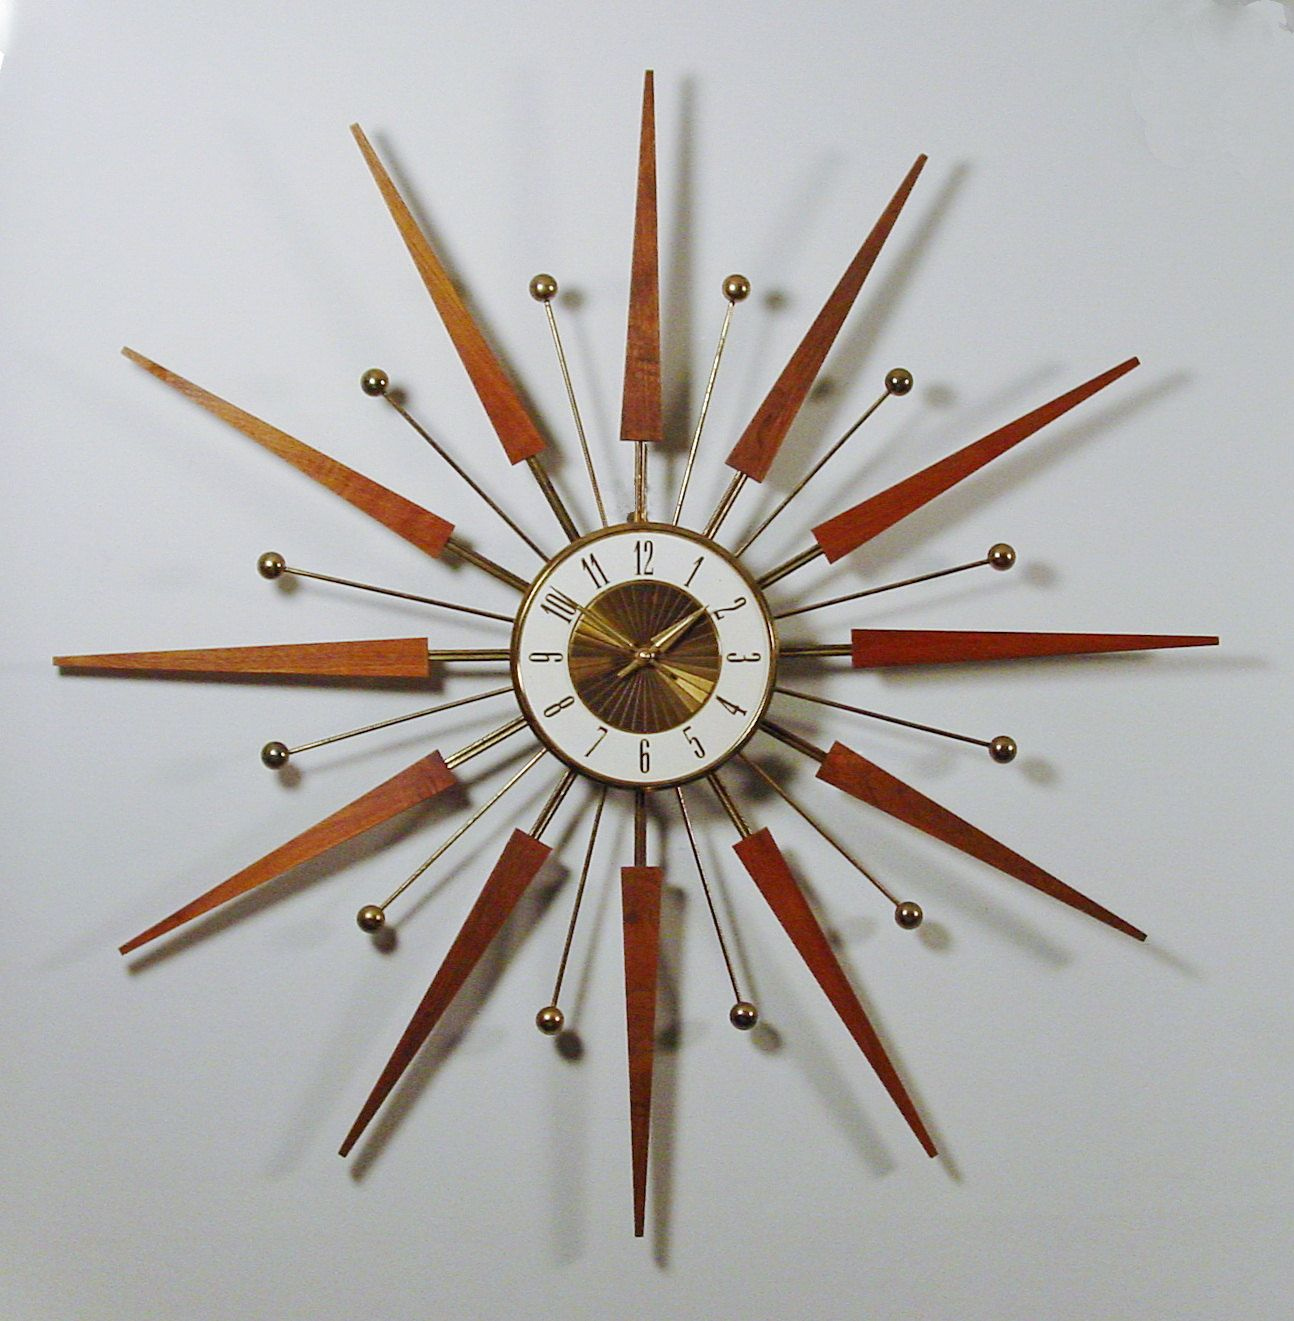 mid century modern starburst wall clock by elgin atomic design  - mid century modern starburst wall clock by elgin atomic design sscifi era of design teak rays